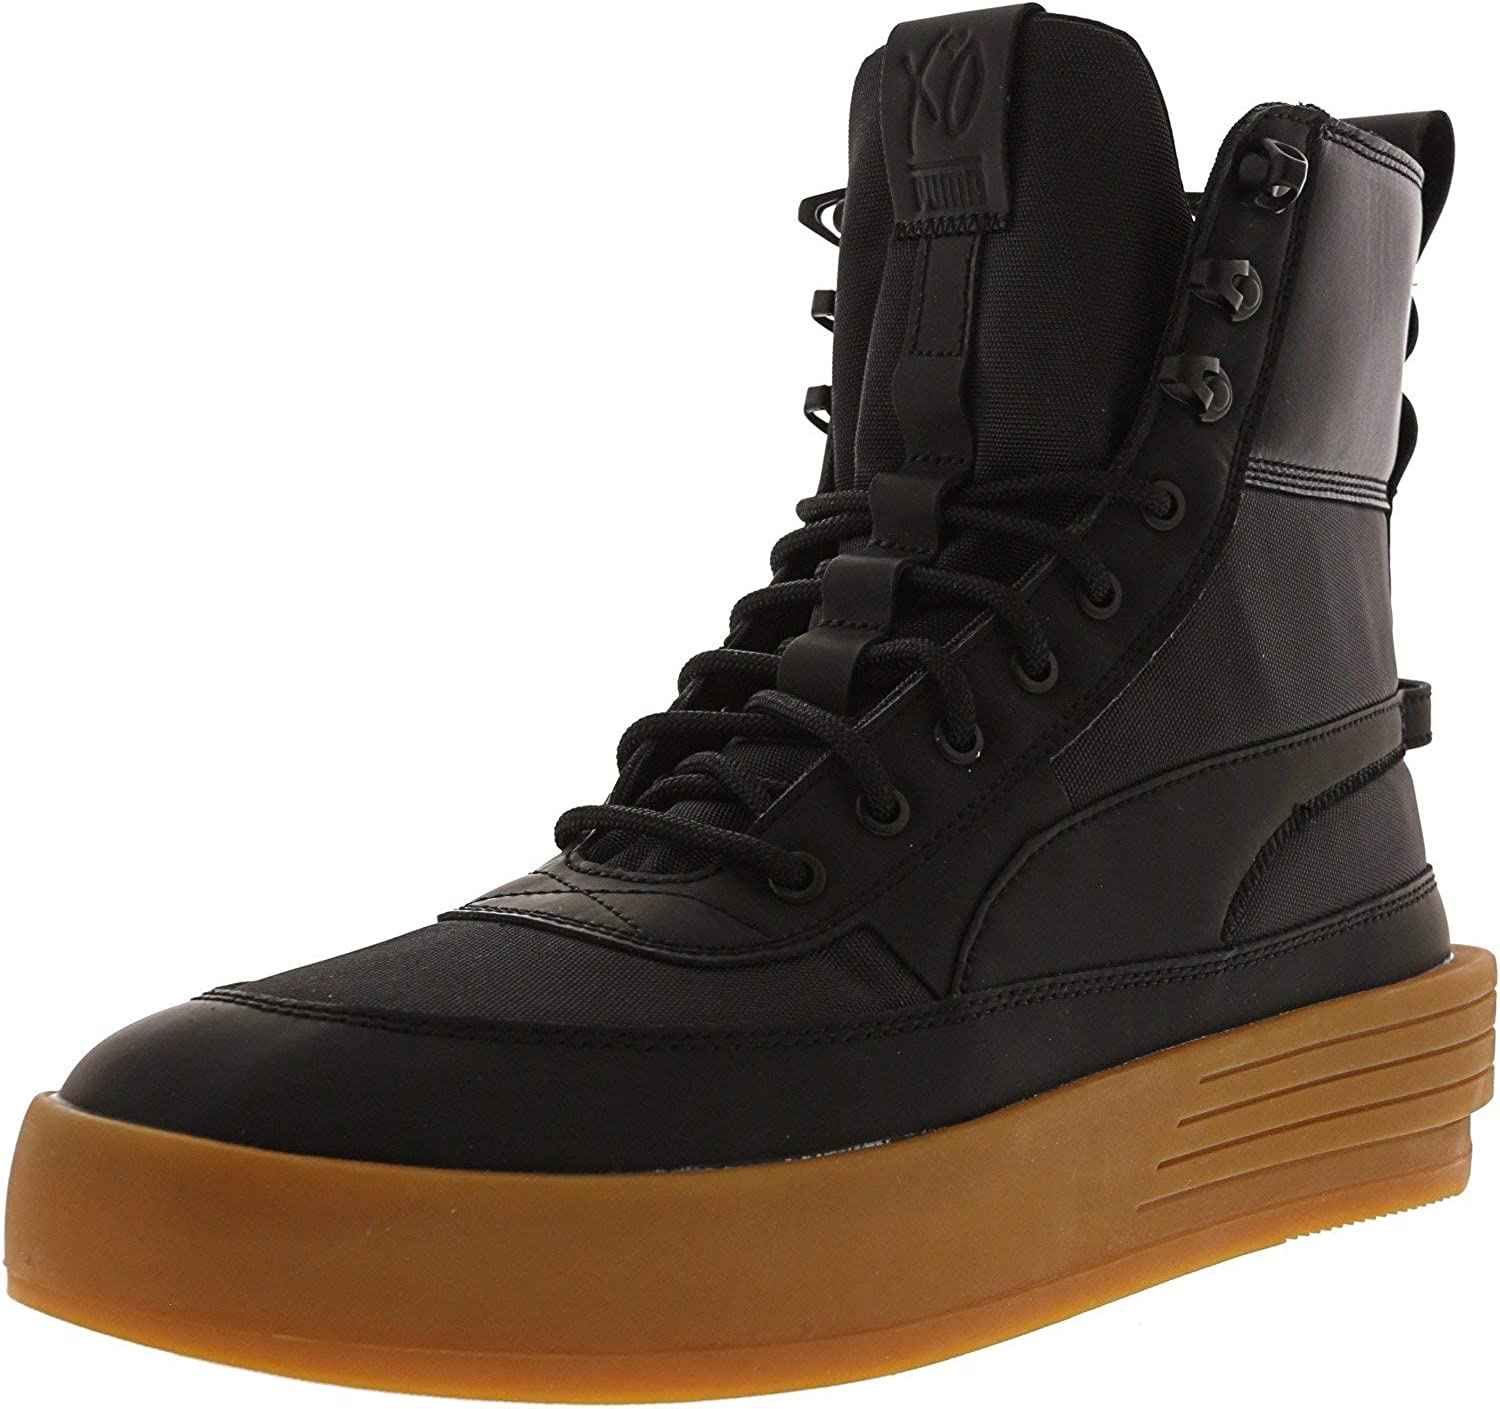 b307b03837fe3 PUMA Mens X Xo by Parallel Tactical Sneakers Weeknd The ...